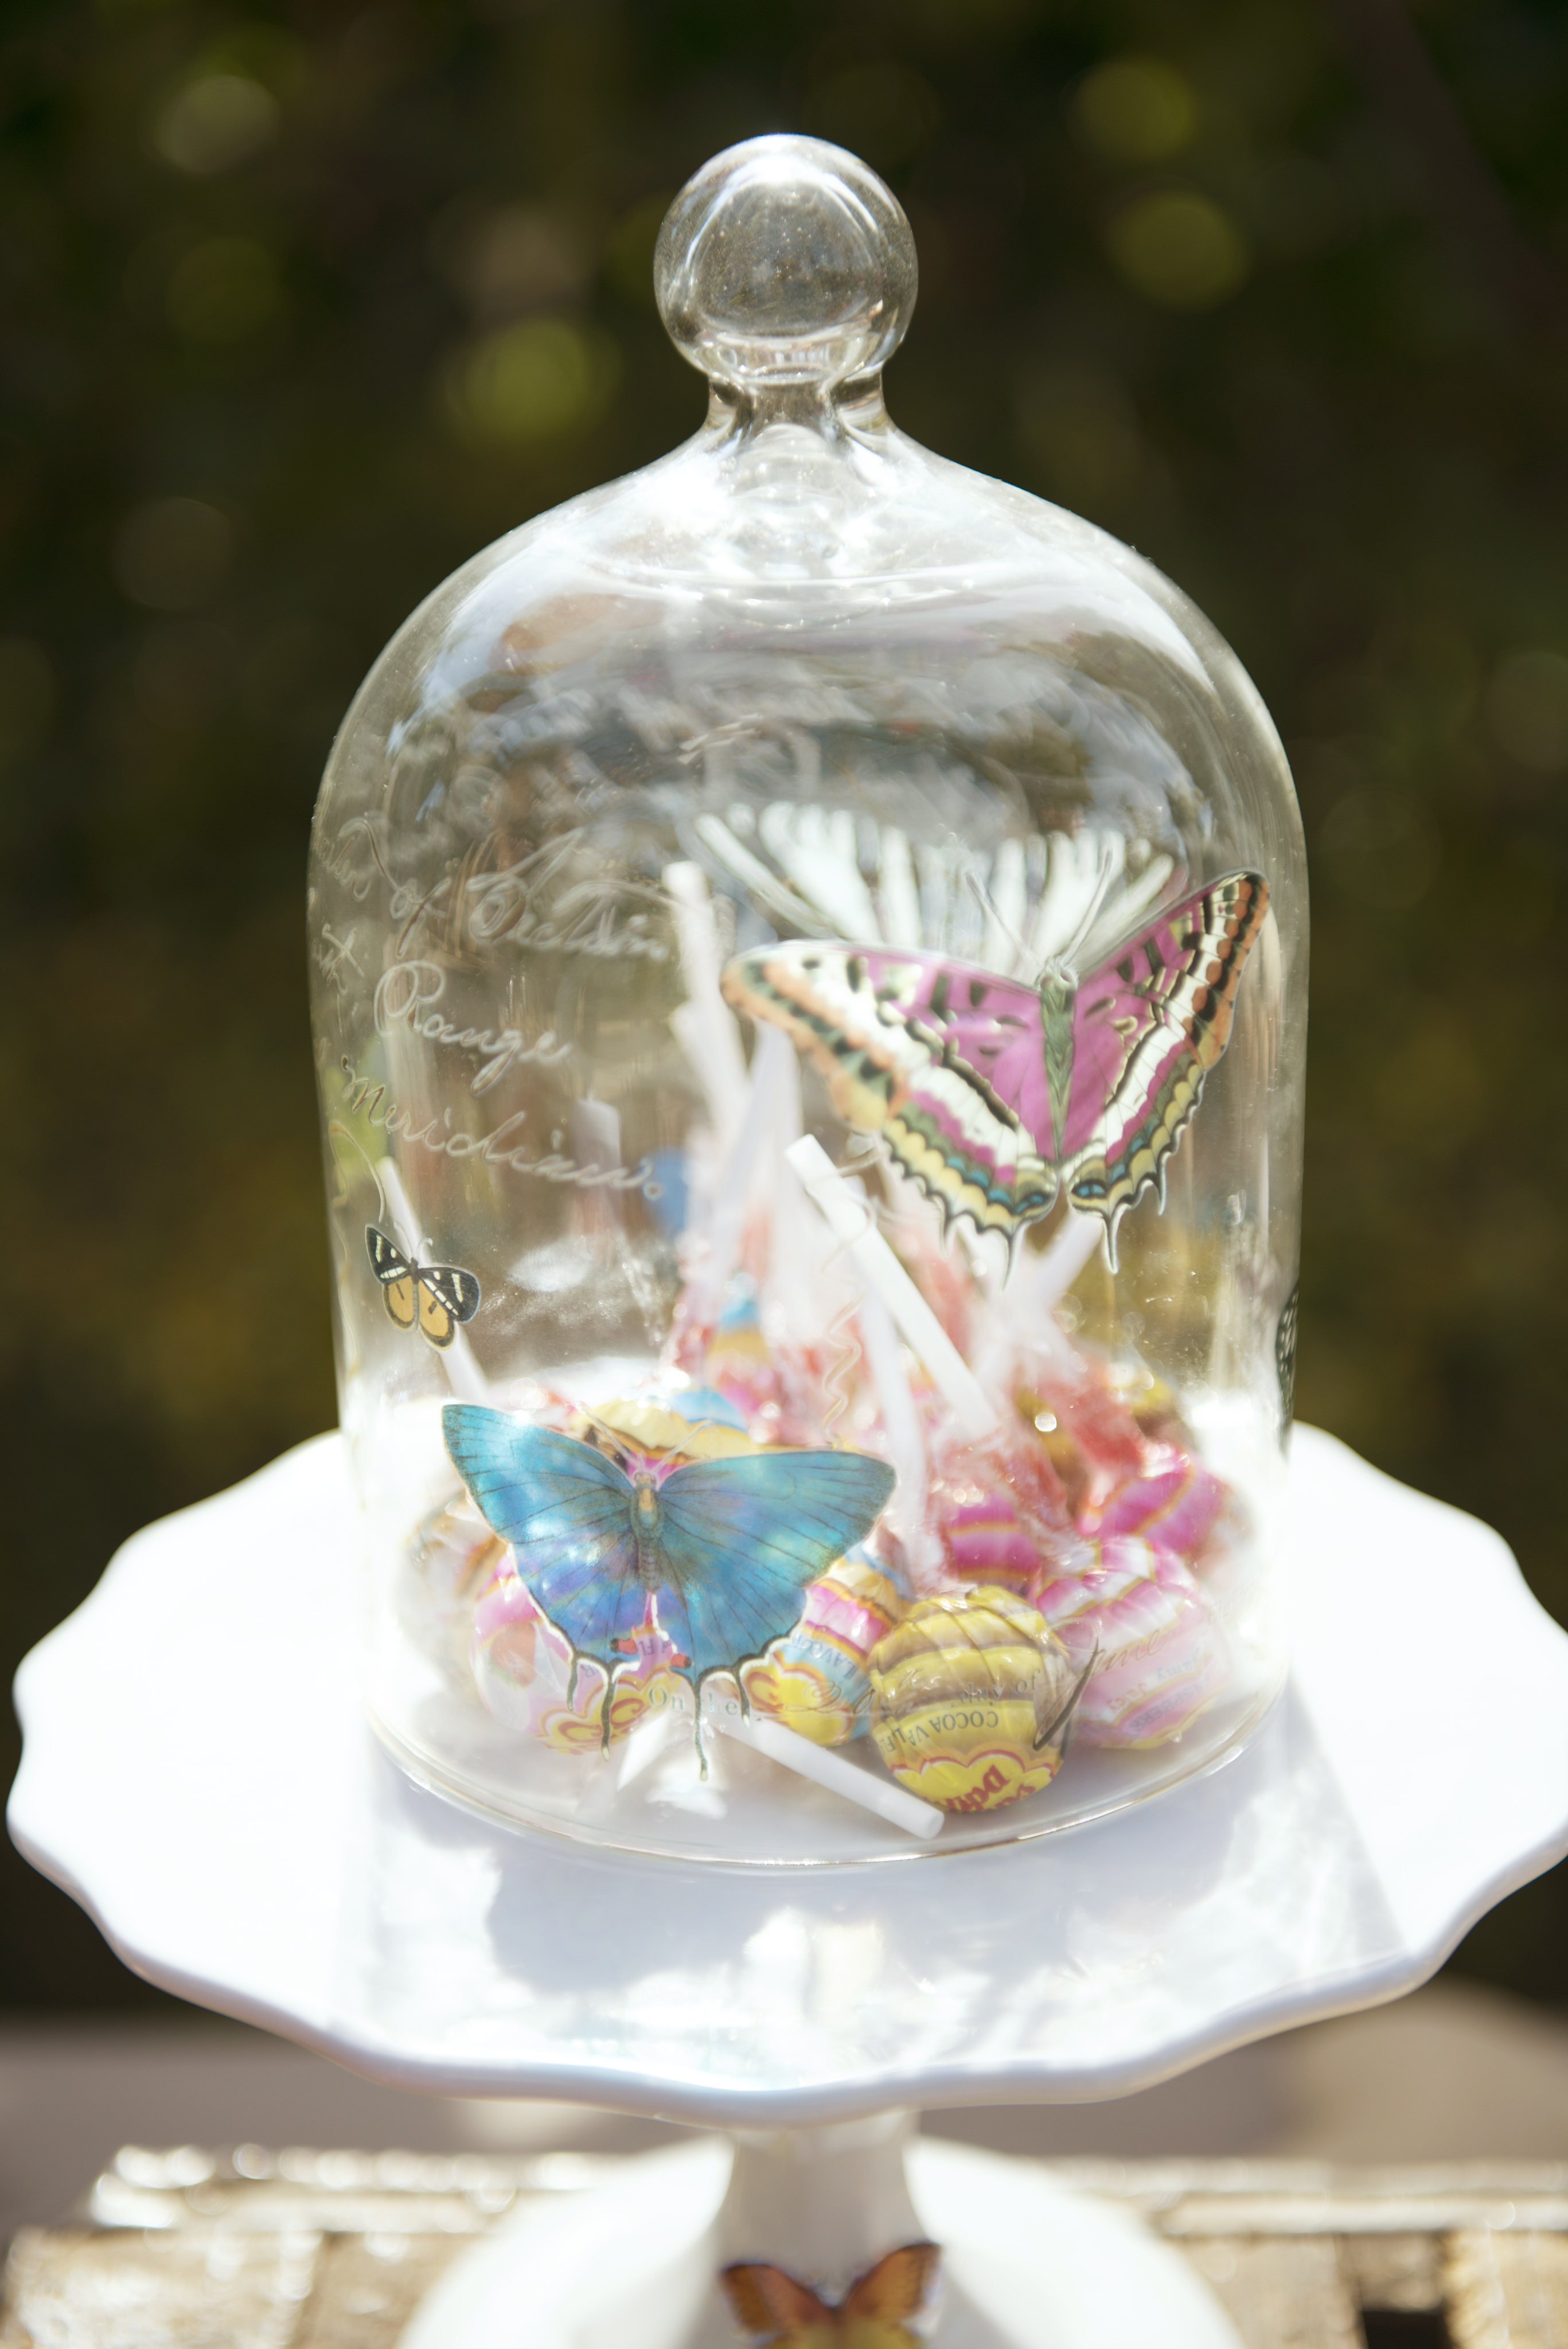 Whimsical Sweets